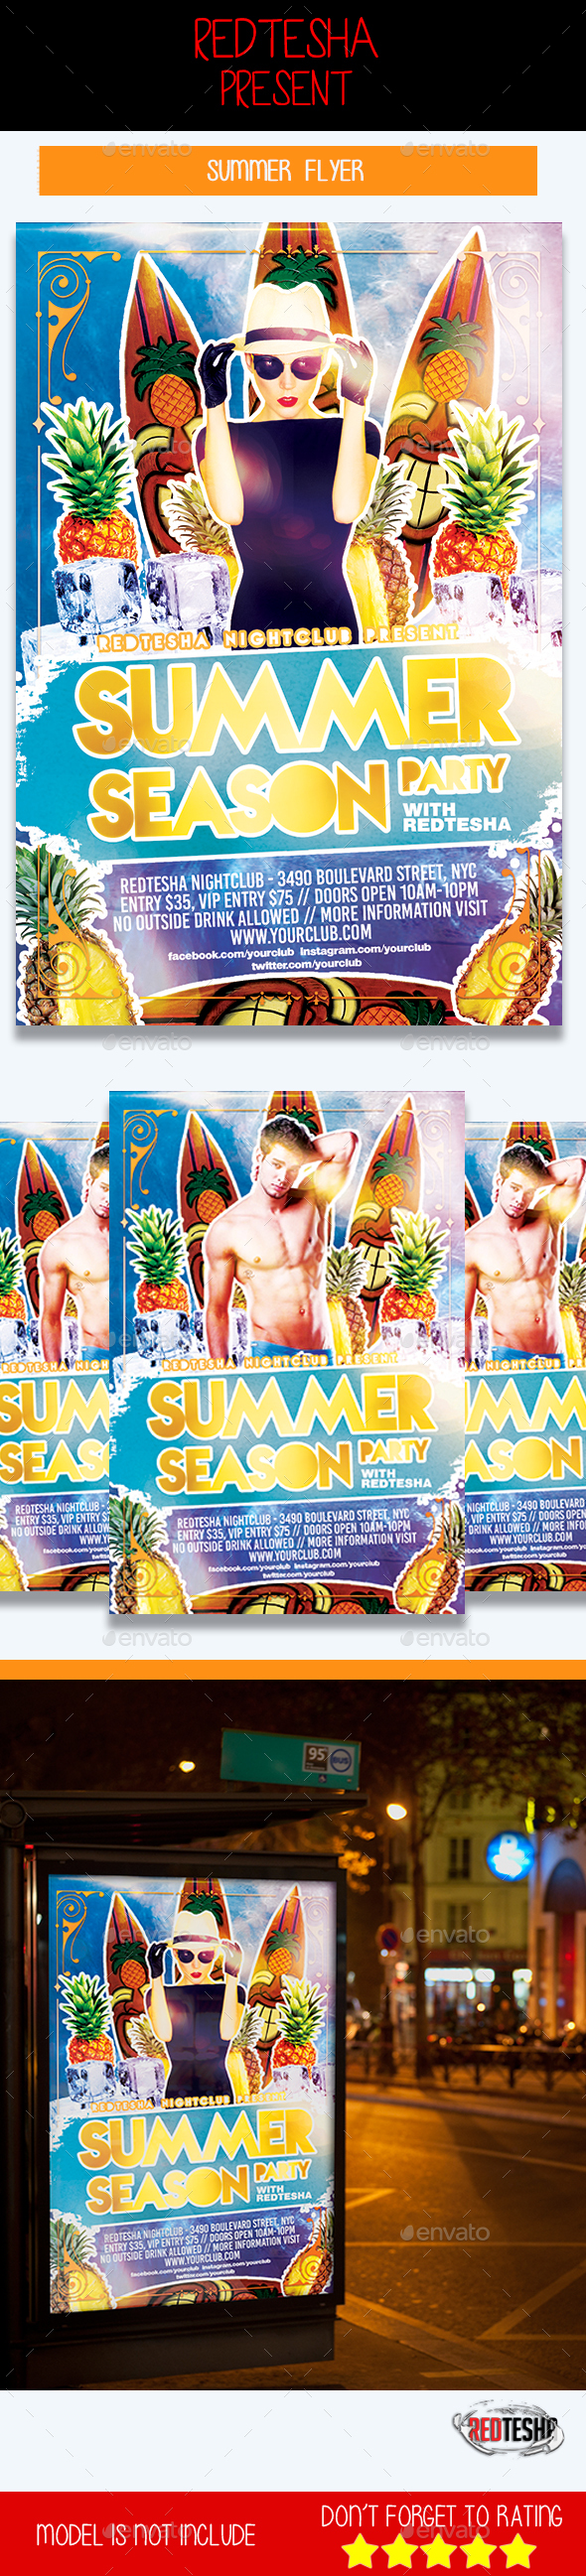 Summer Season Flyer